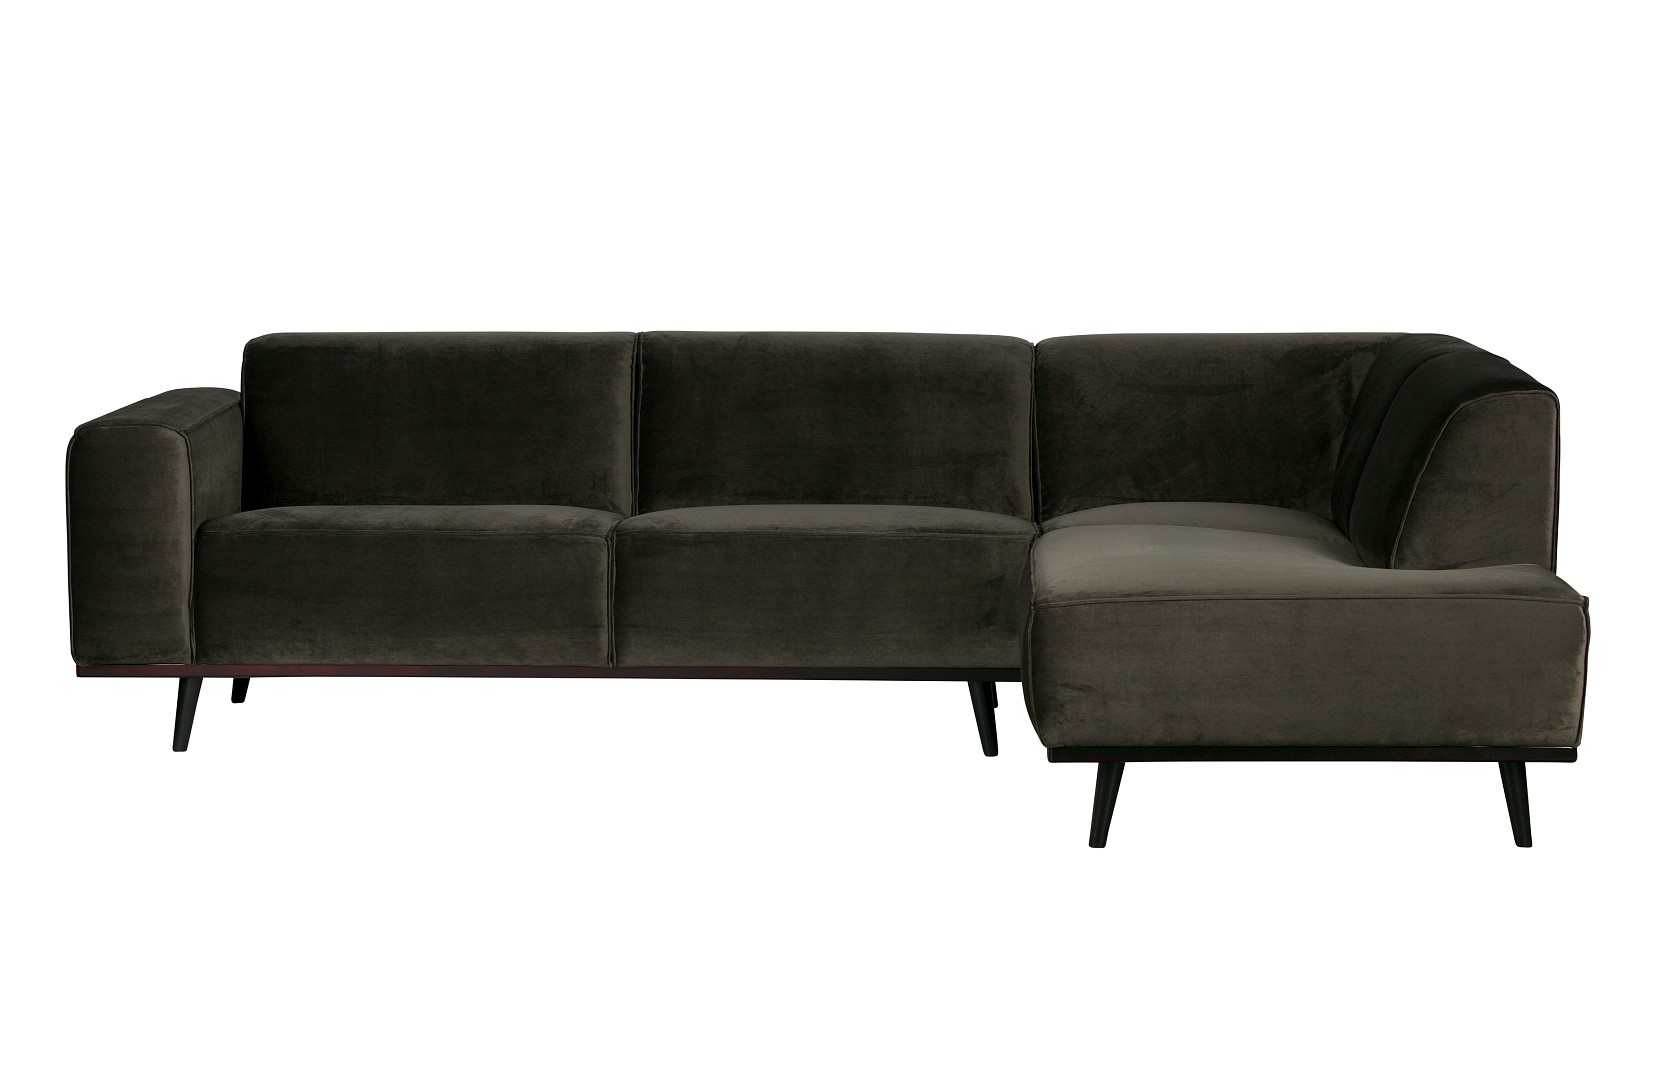 vintage sofas im vintagehaus online shop kaufen. Black Bedroom Furniture Sets. Home Design Ideas